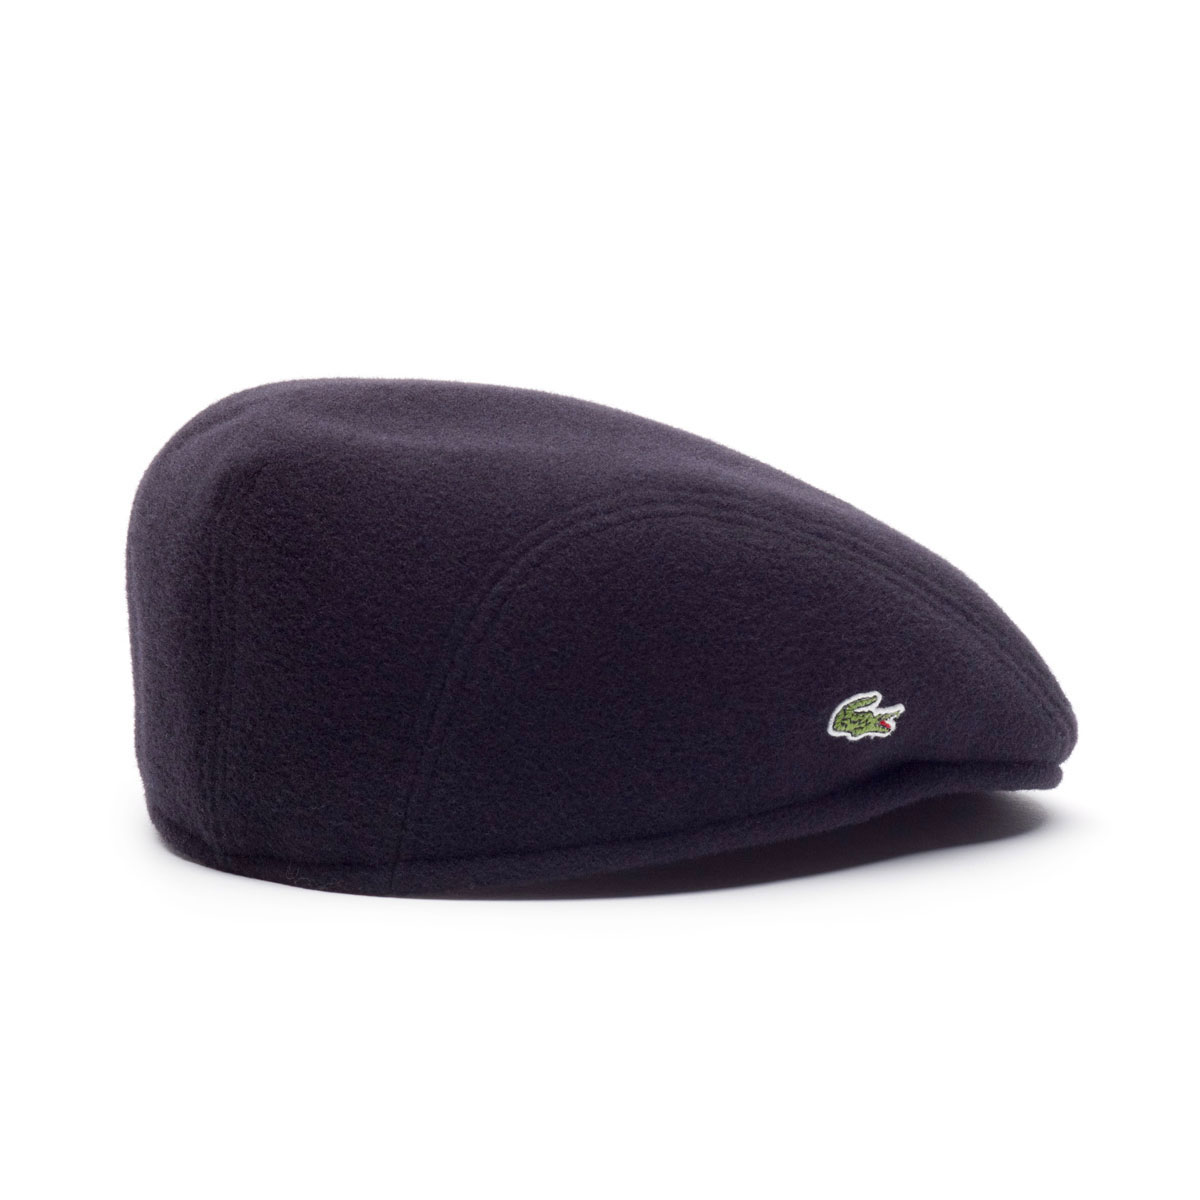 92a6675f22e Lacoste Mens Flat Wool Cap RK9814 Classic Style Traditional Hat